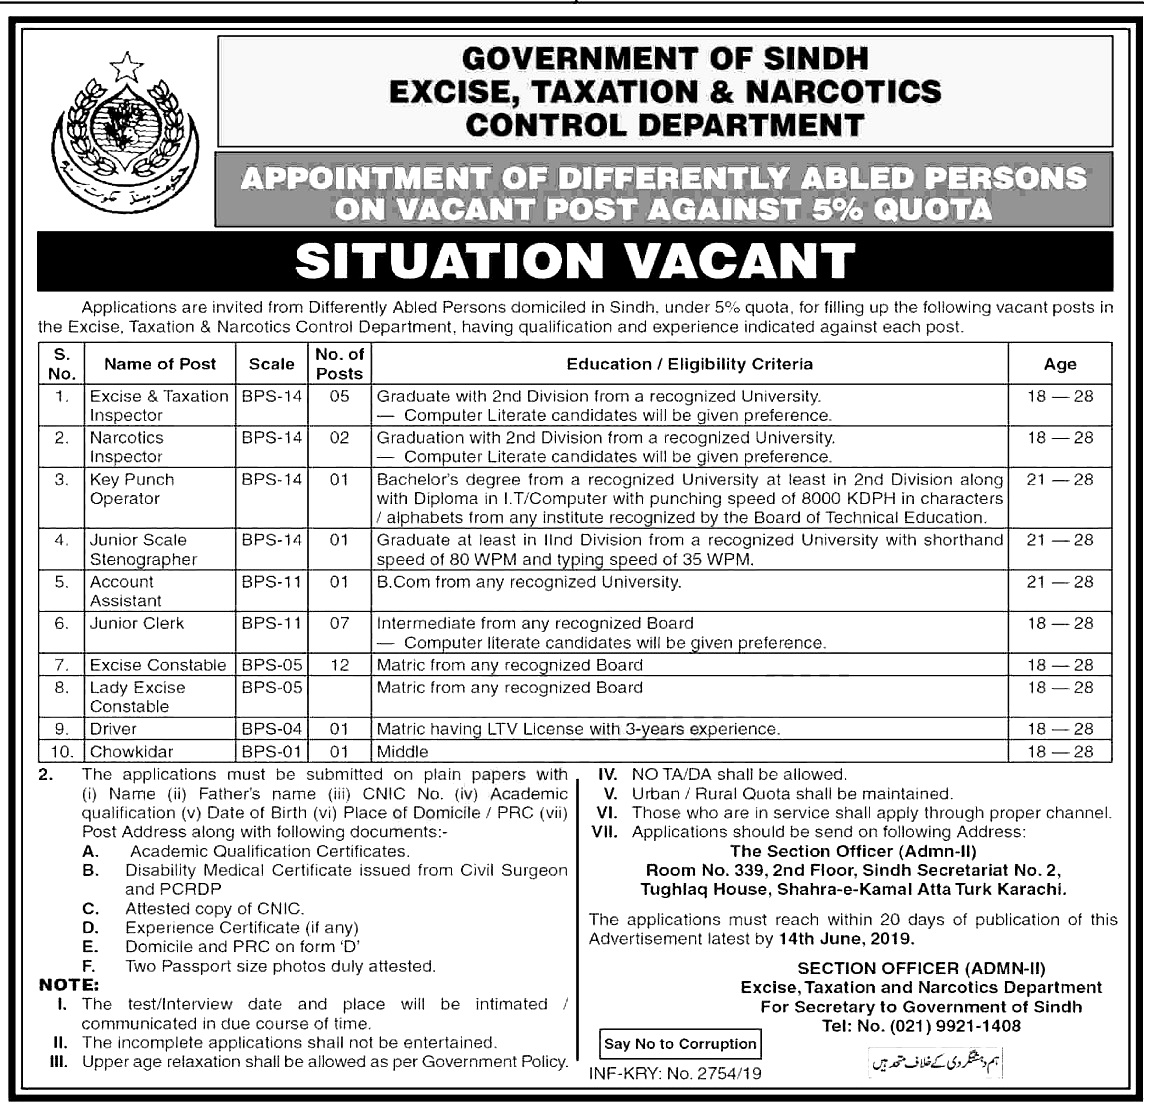 Excise Taxation & Narcotics Control Department Jobs 2019 Application form Eligibility Criteria